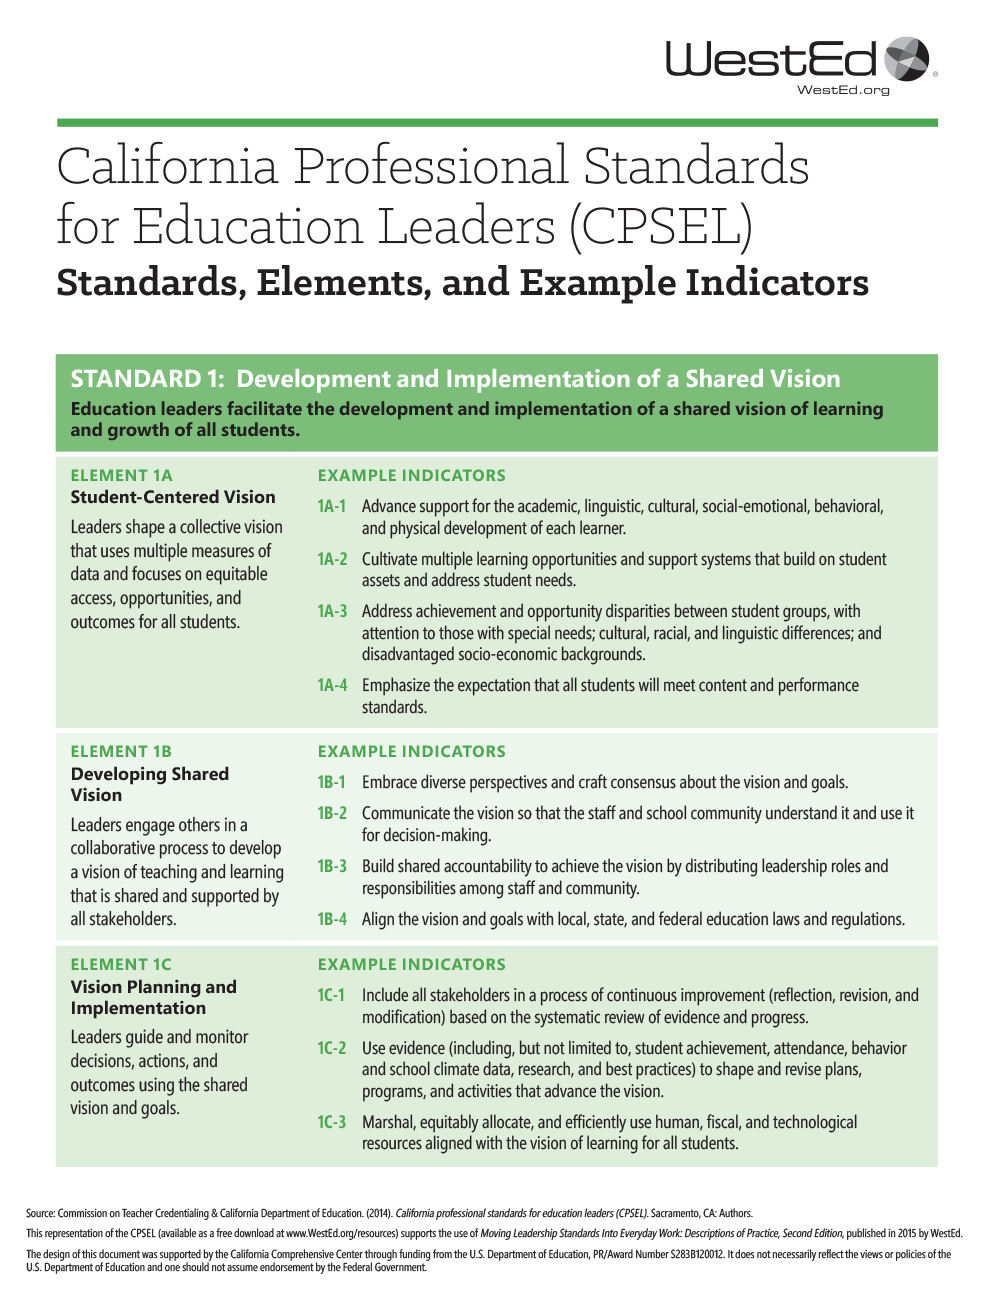 California Professional Standards for Educational Leaders